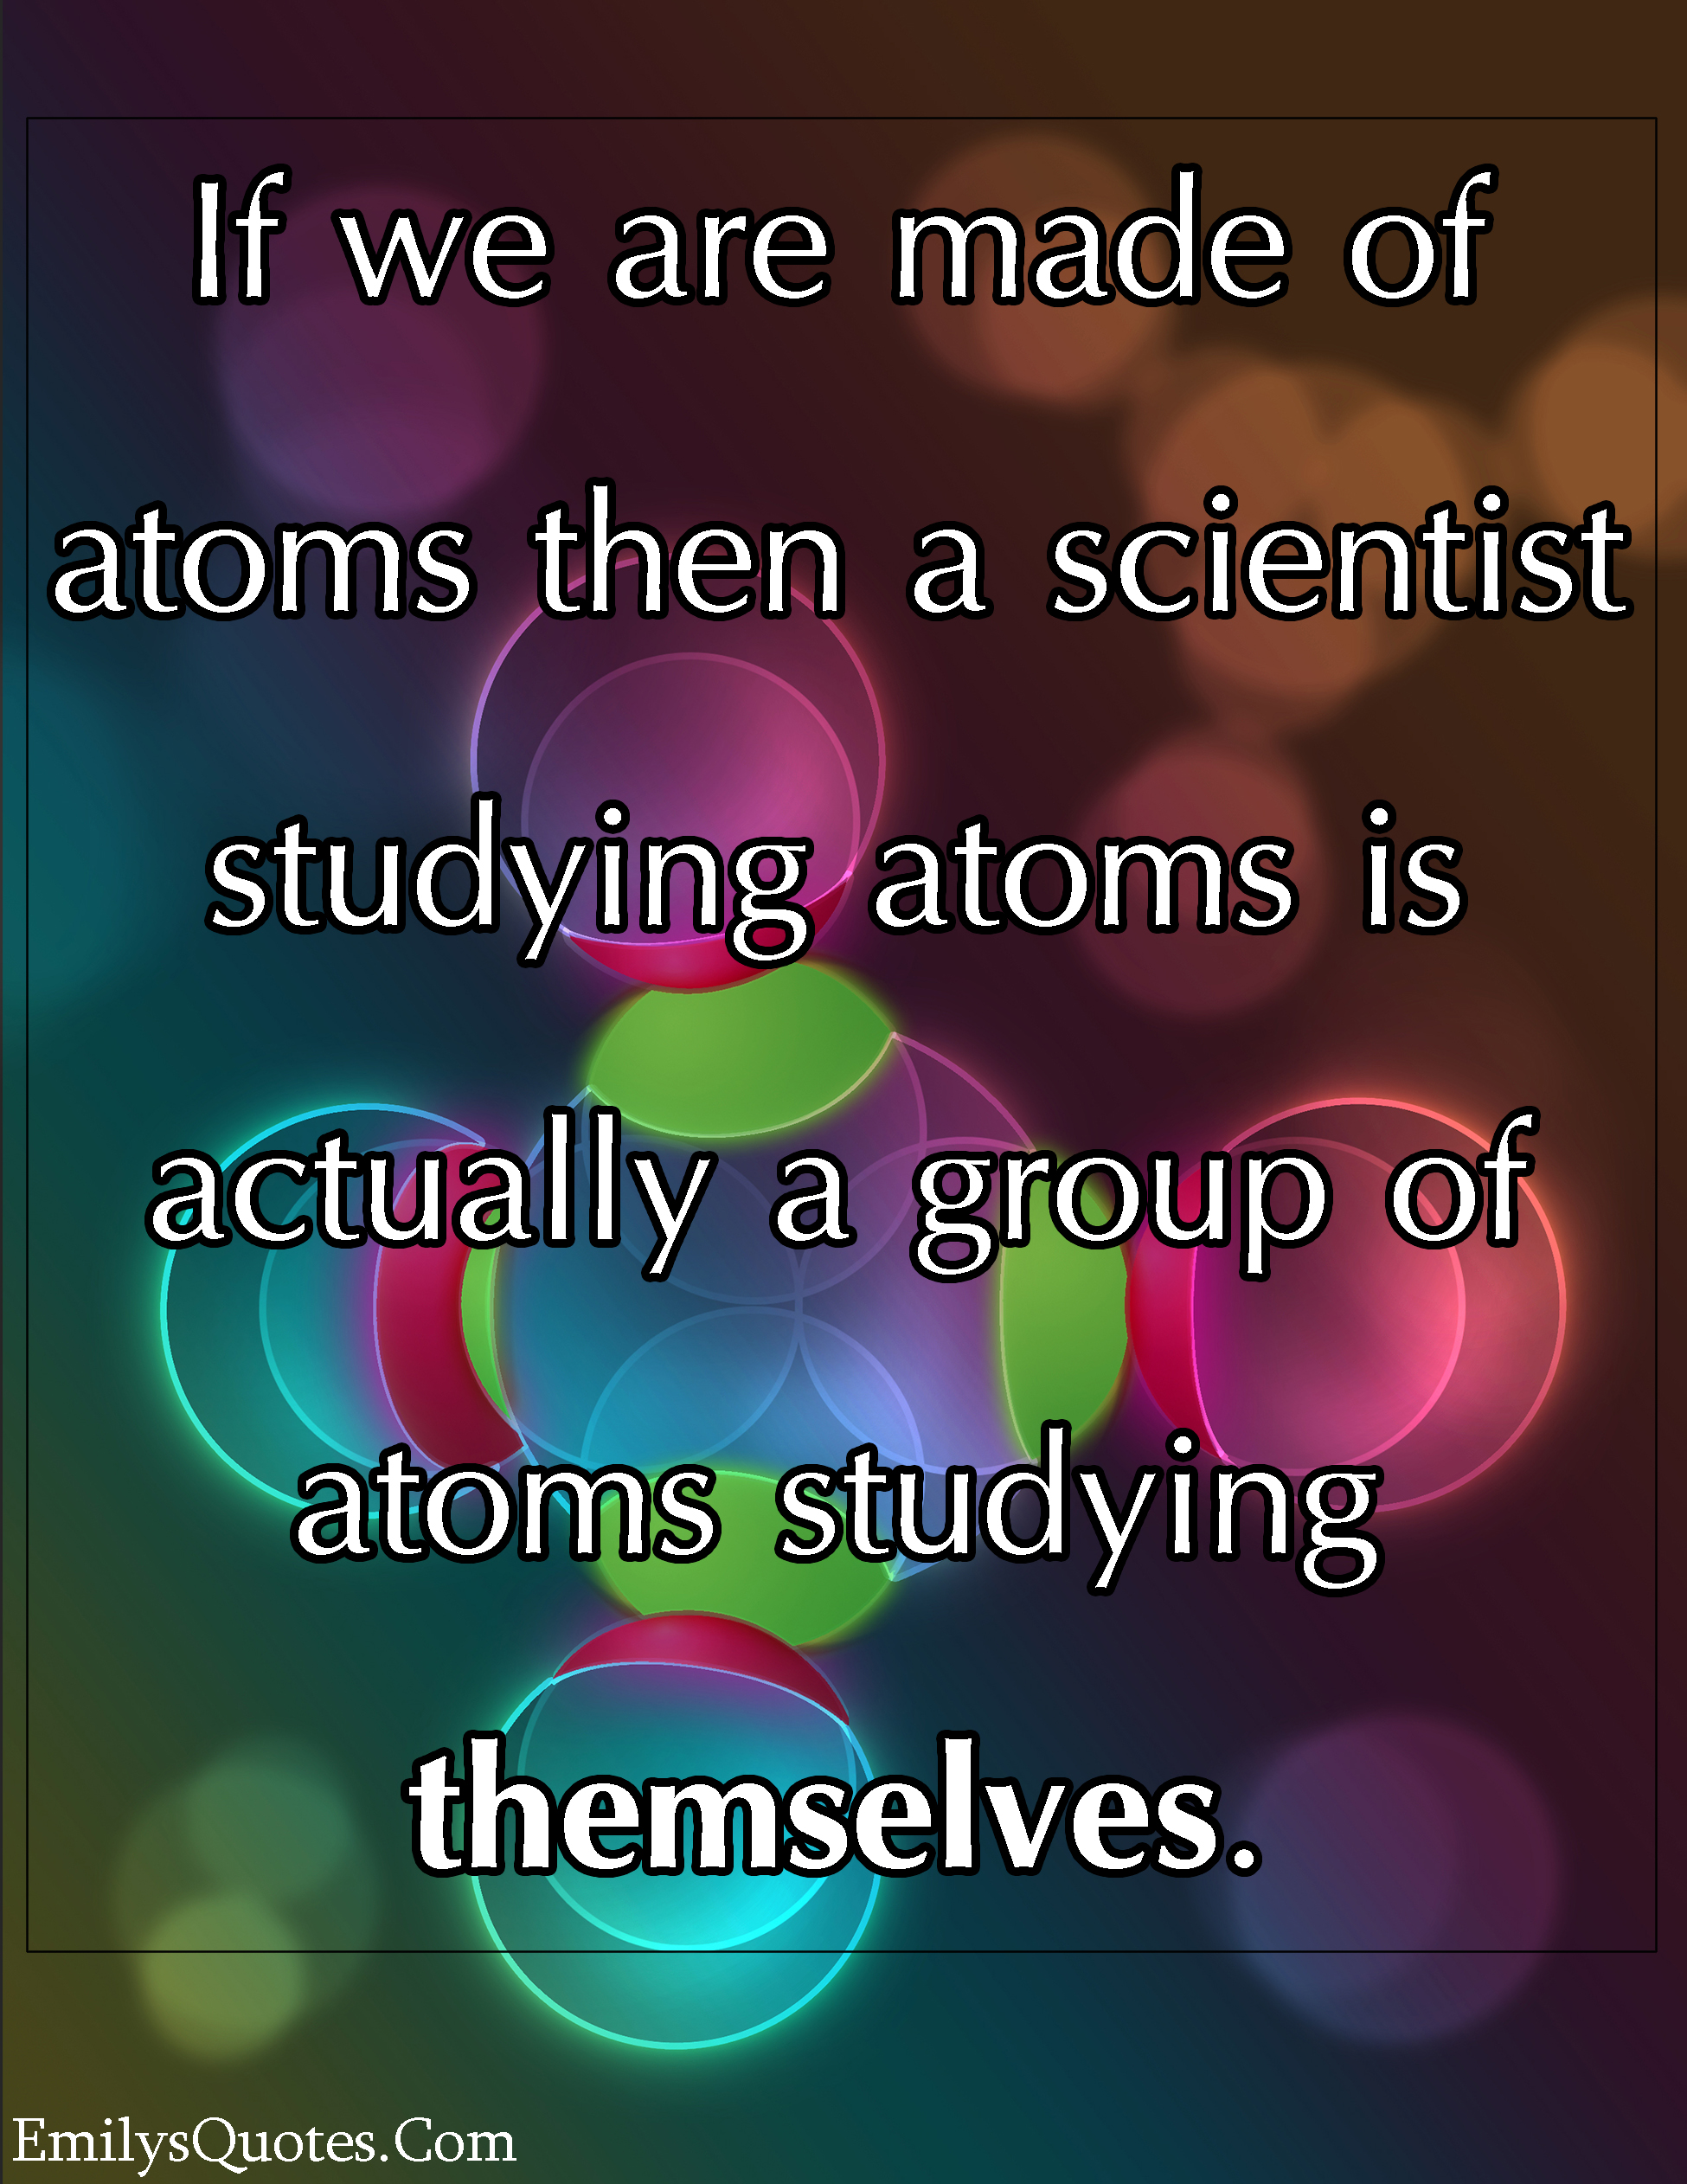 EmilysQuotes.Com - atoms, science, study, amazing, Anonymous